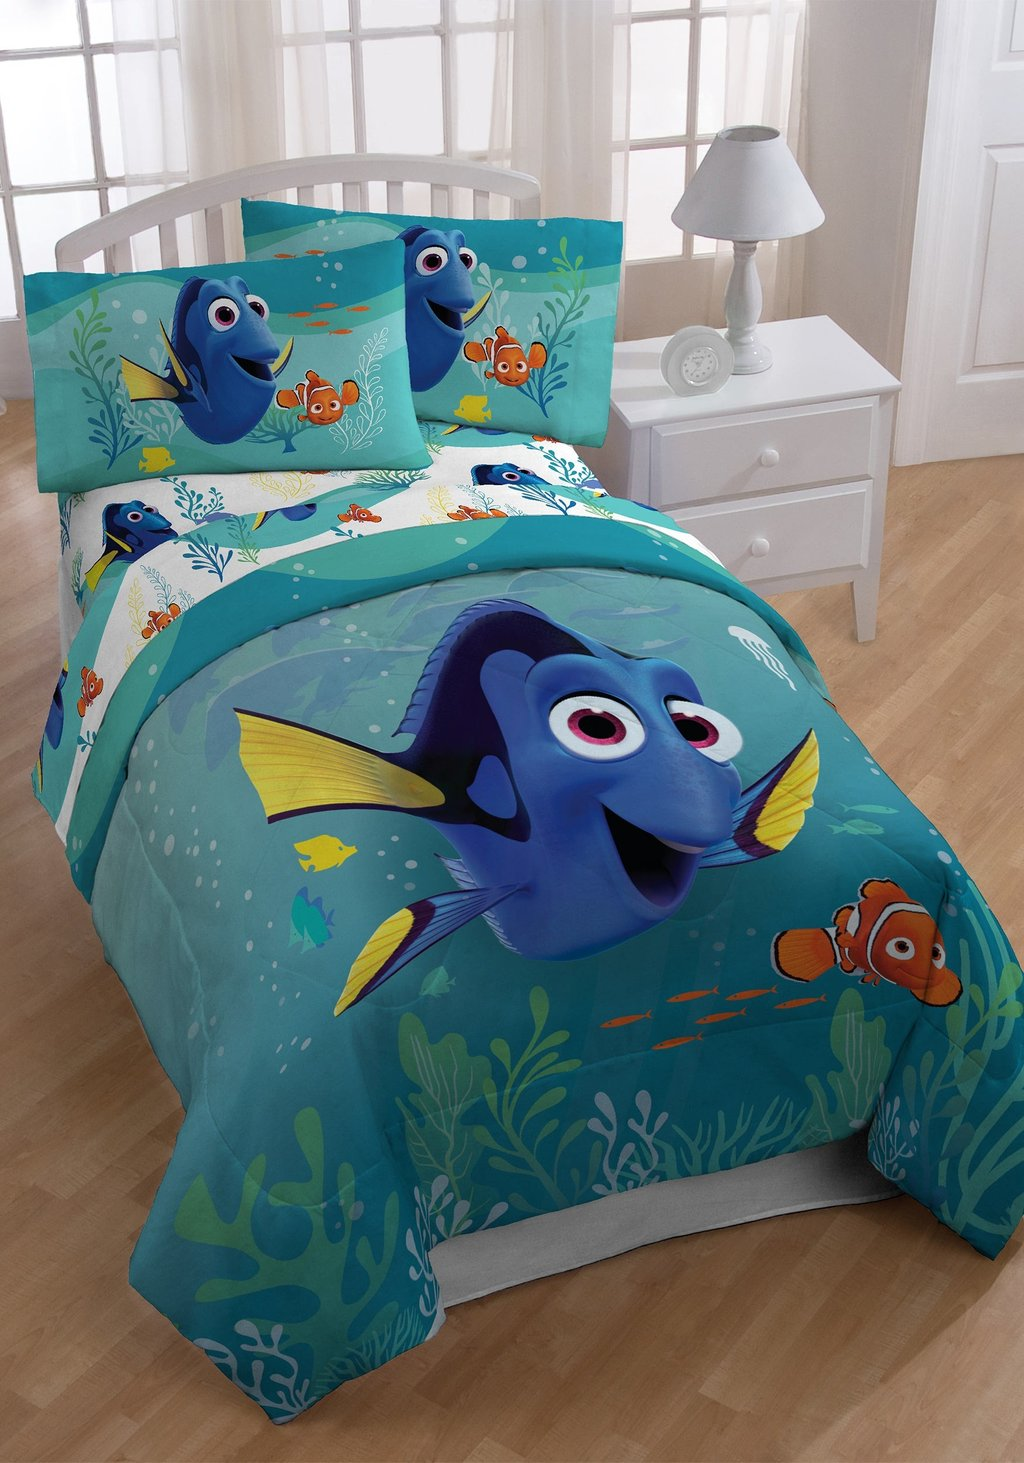 Image of: Finding Nemo Bedding Full Bedding Set Collection Black and White Crib Bedding Set